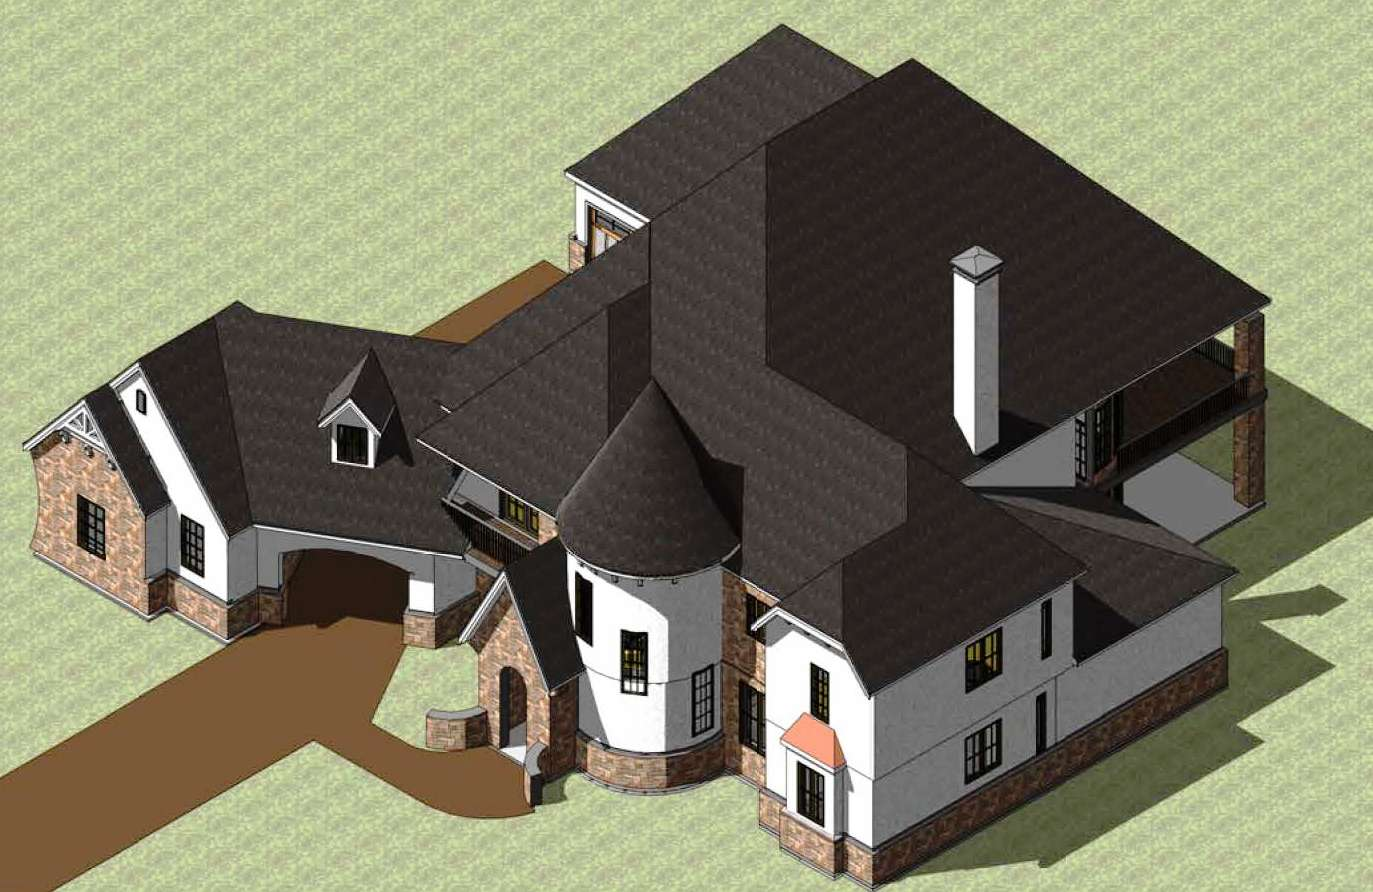 3 dimensional house plans for 3d house blueprints